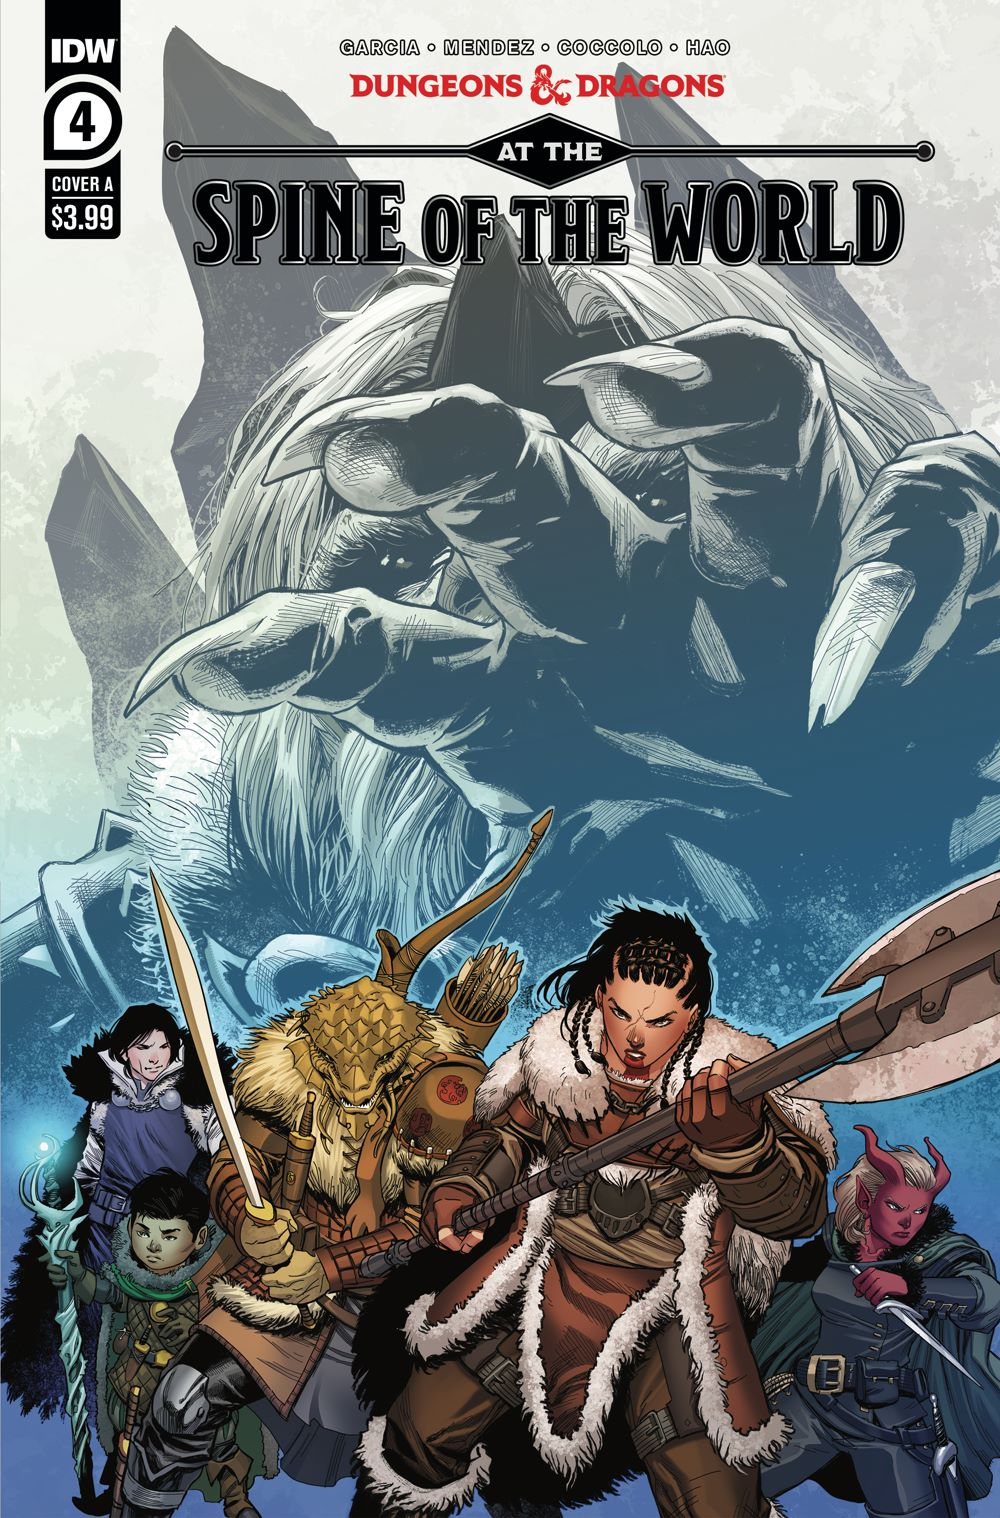 DD_ATSOTW04-coverA ComicList Previews: DUNGEONS AND DRAGONS AT THE SPINE OF THE WORLD #4 (OF 4)